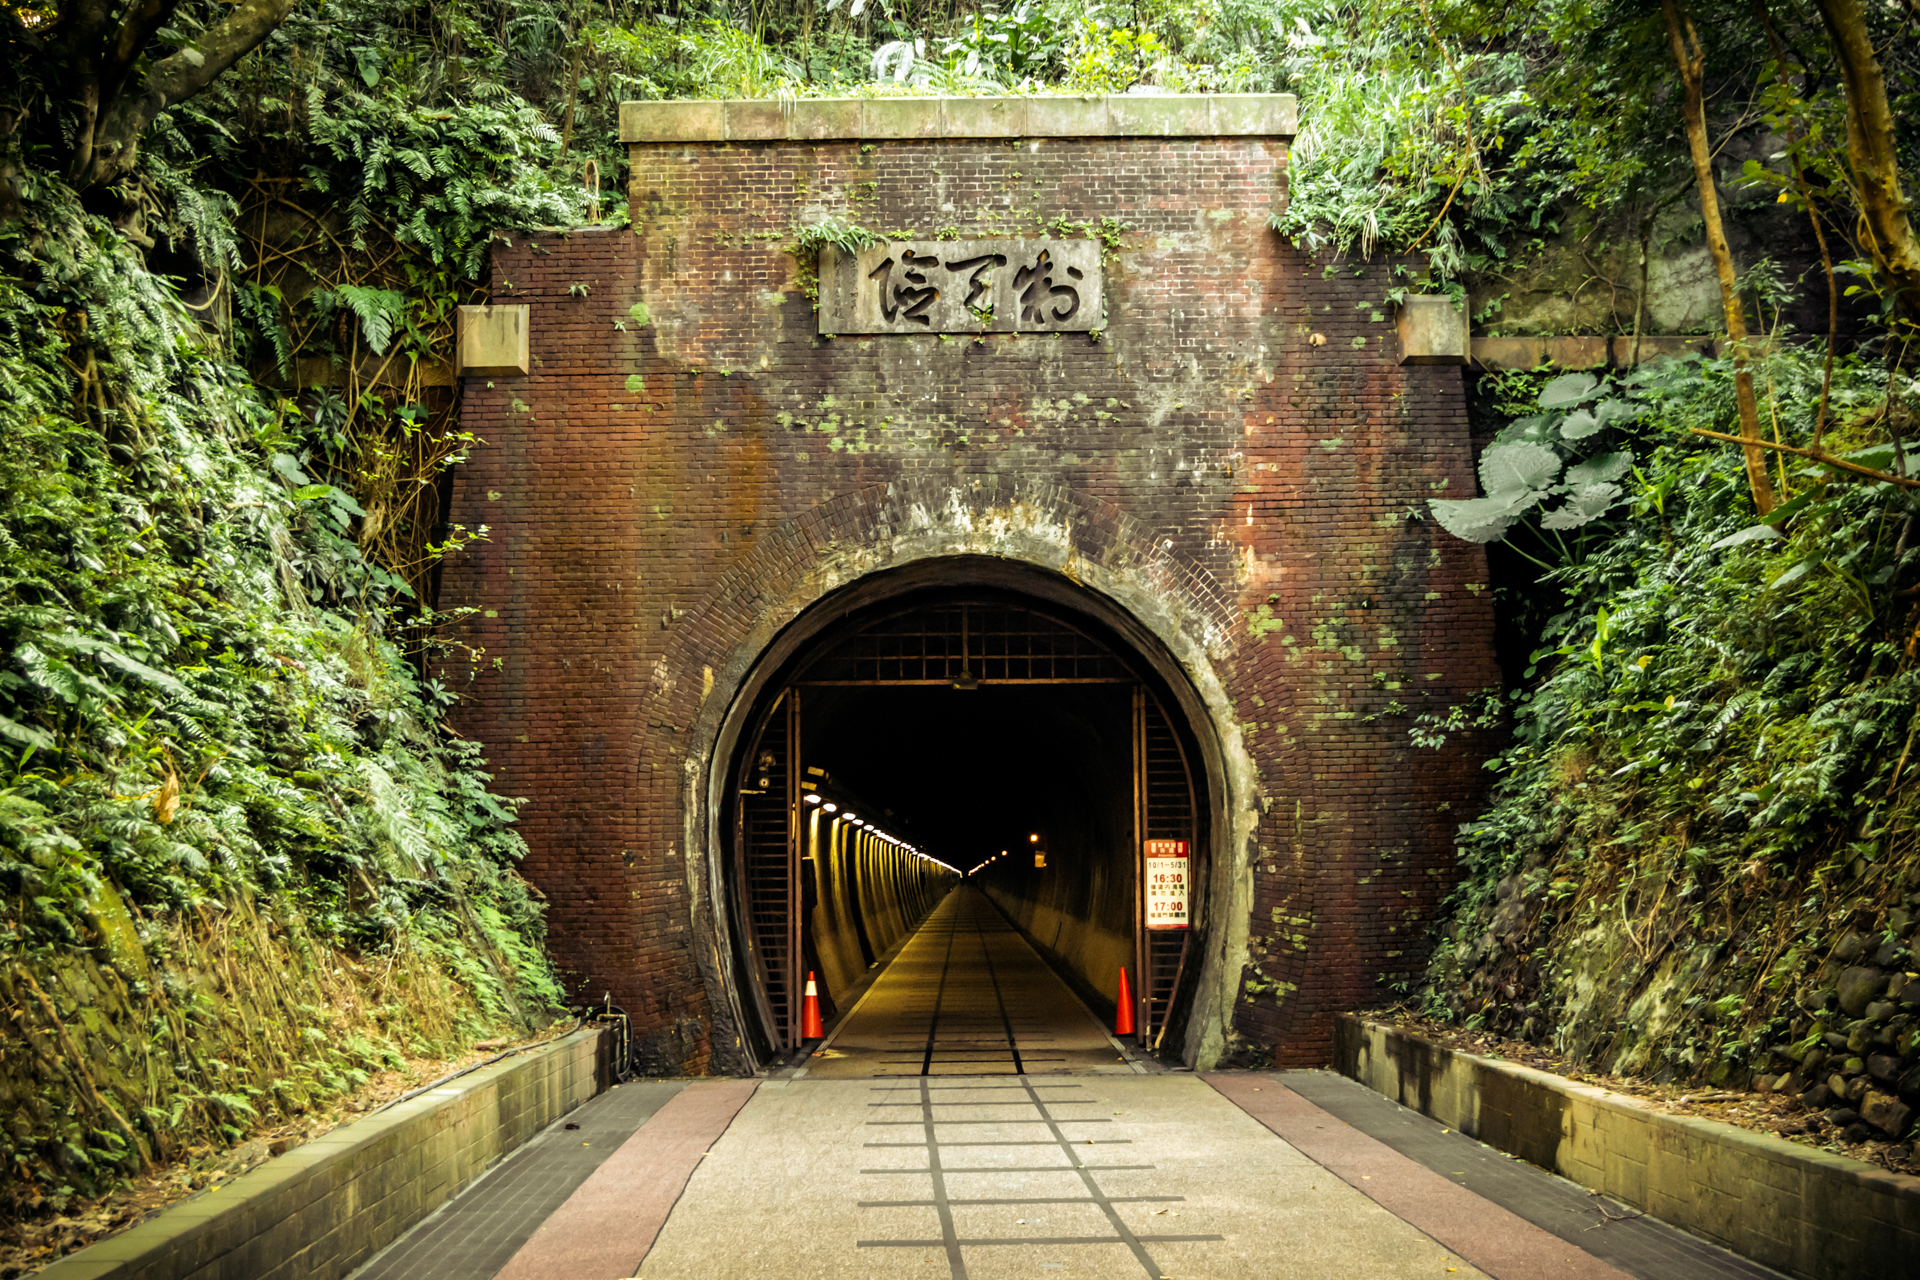 Old Caoling Tunnel 舊草嶺隧道 – Synapticism